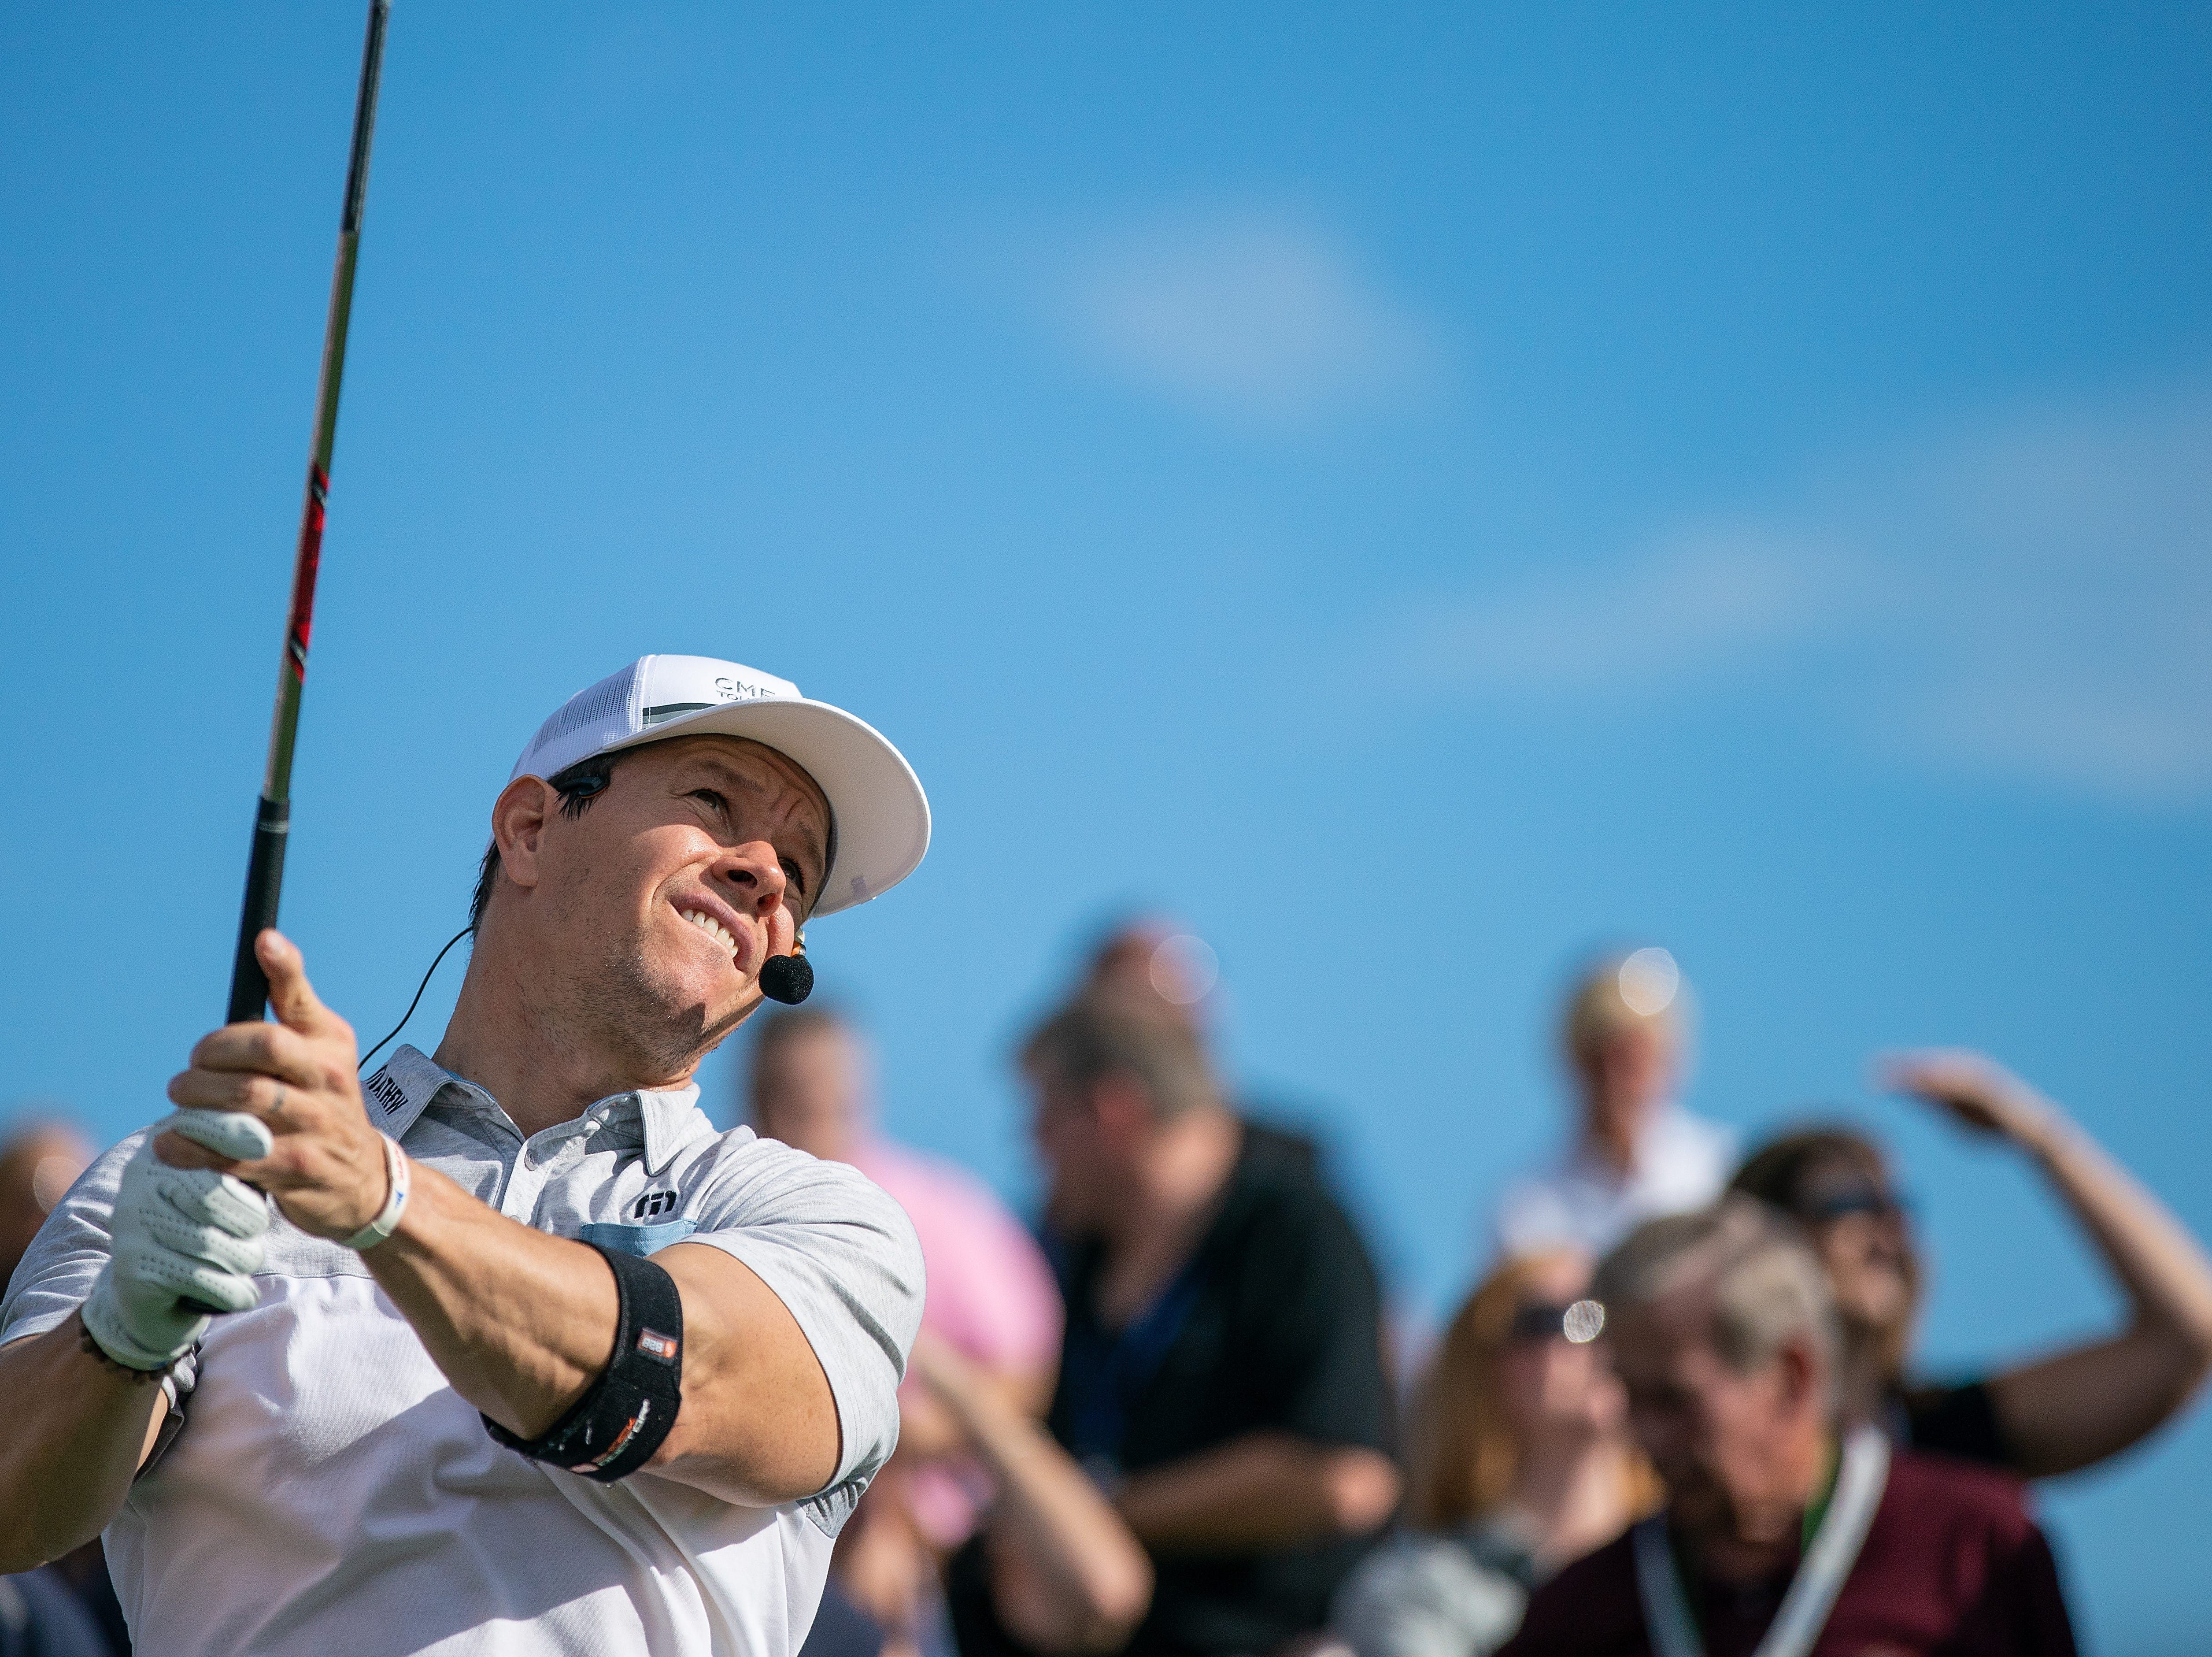 What you need to know before heading to the CME Group golf tournament